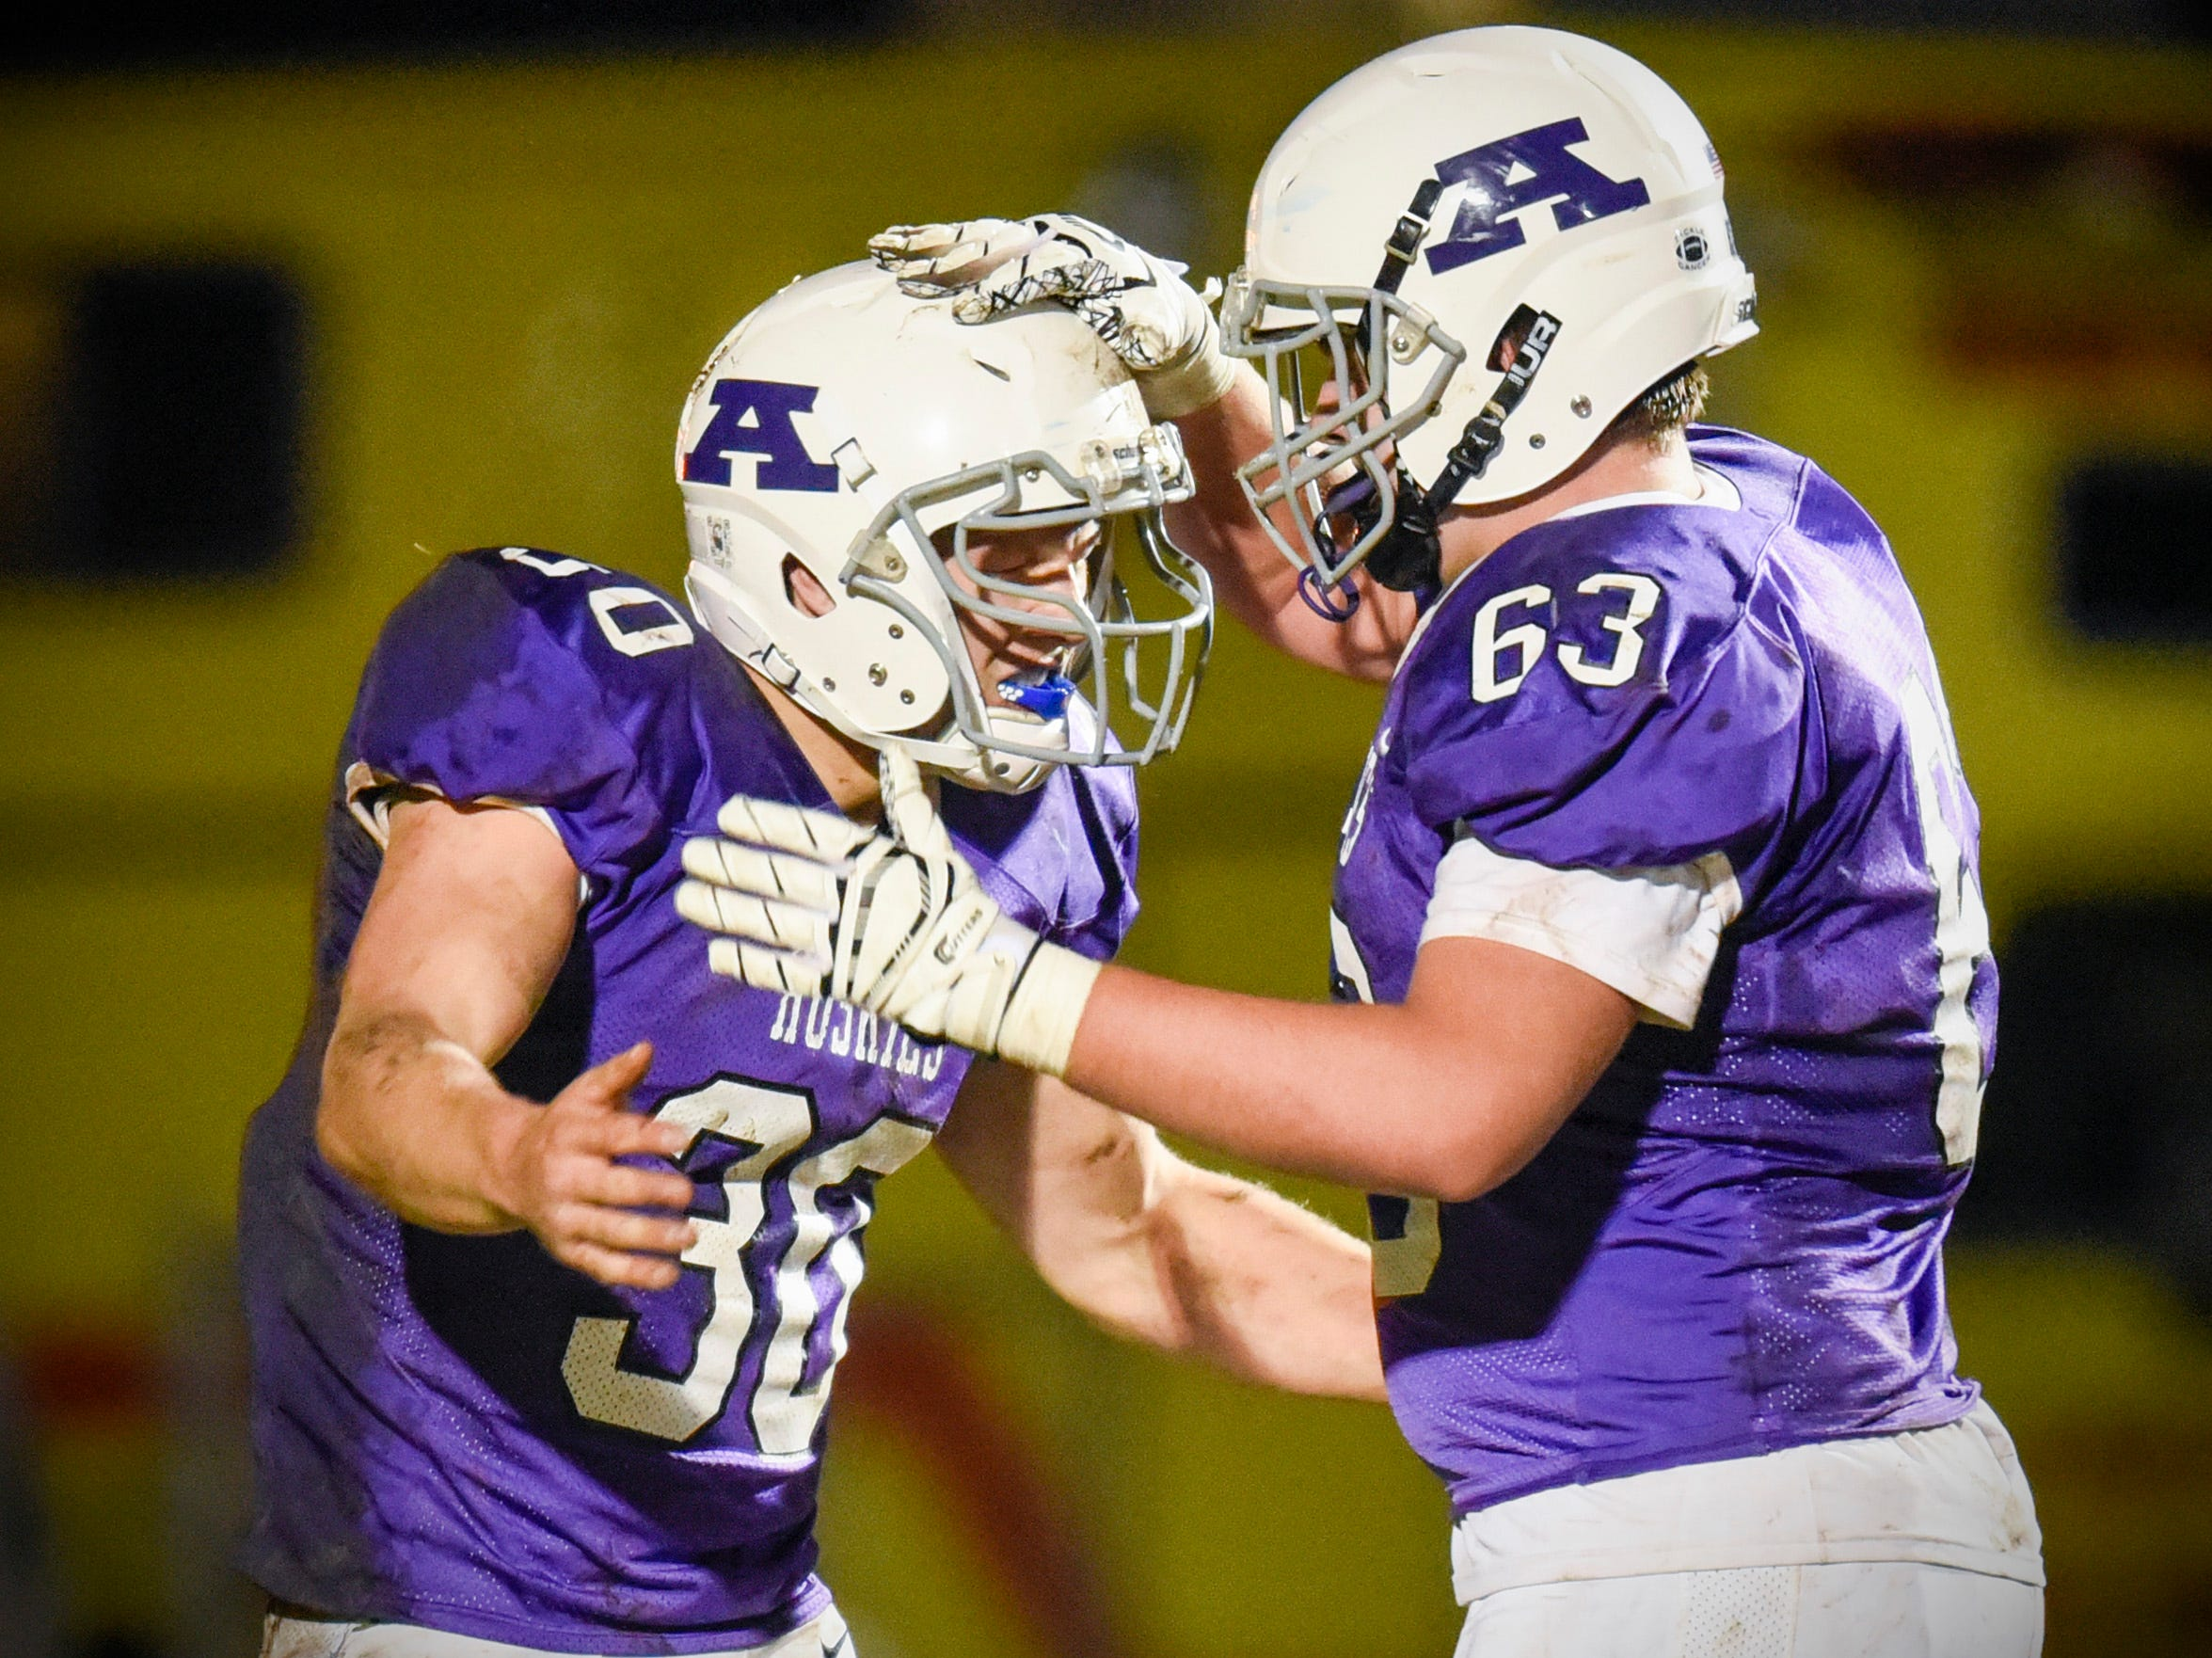 Albany's Gabe Zierden celebrates his touchdown with teammate Devin Ritter against Foley during the first half Friday, Oct. 12, in Albany.